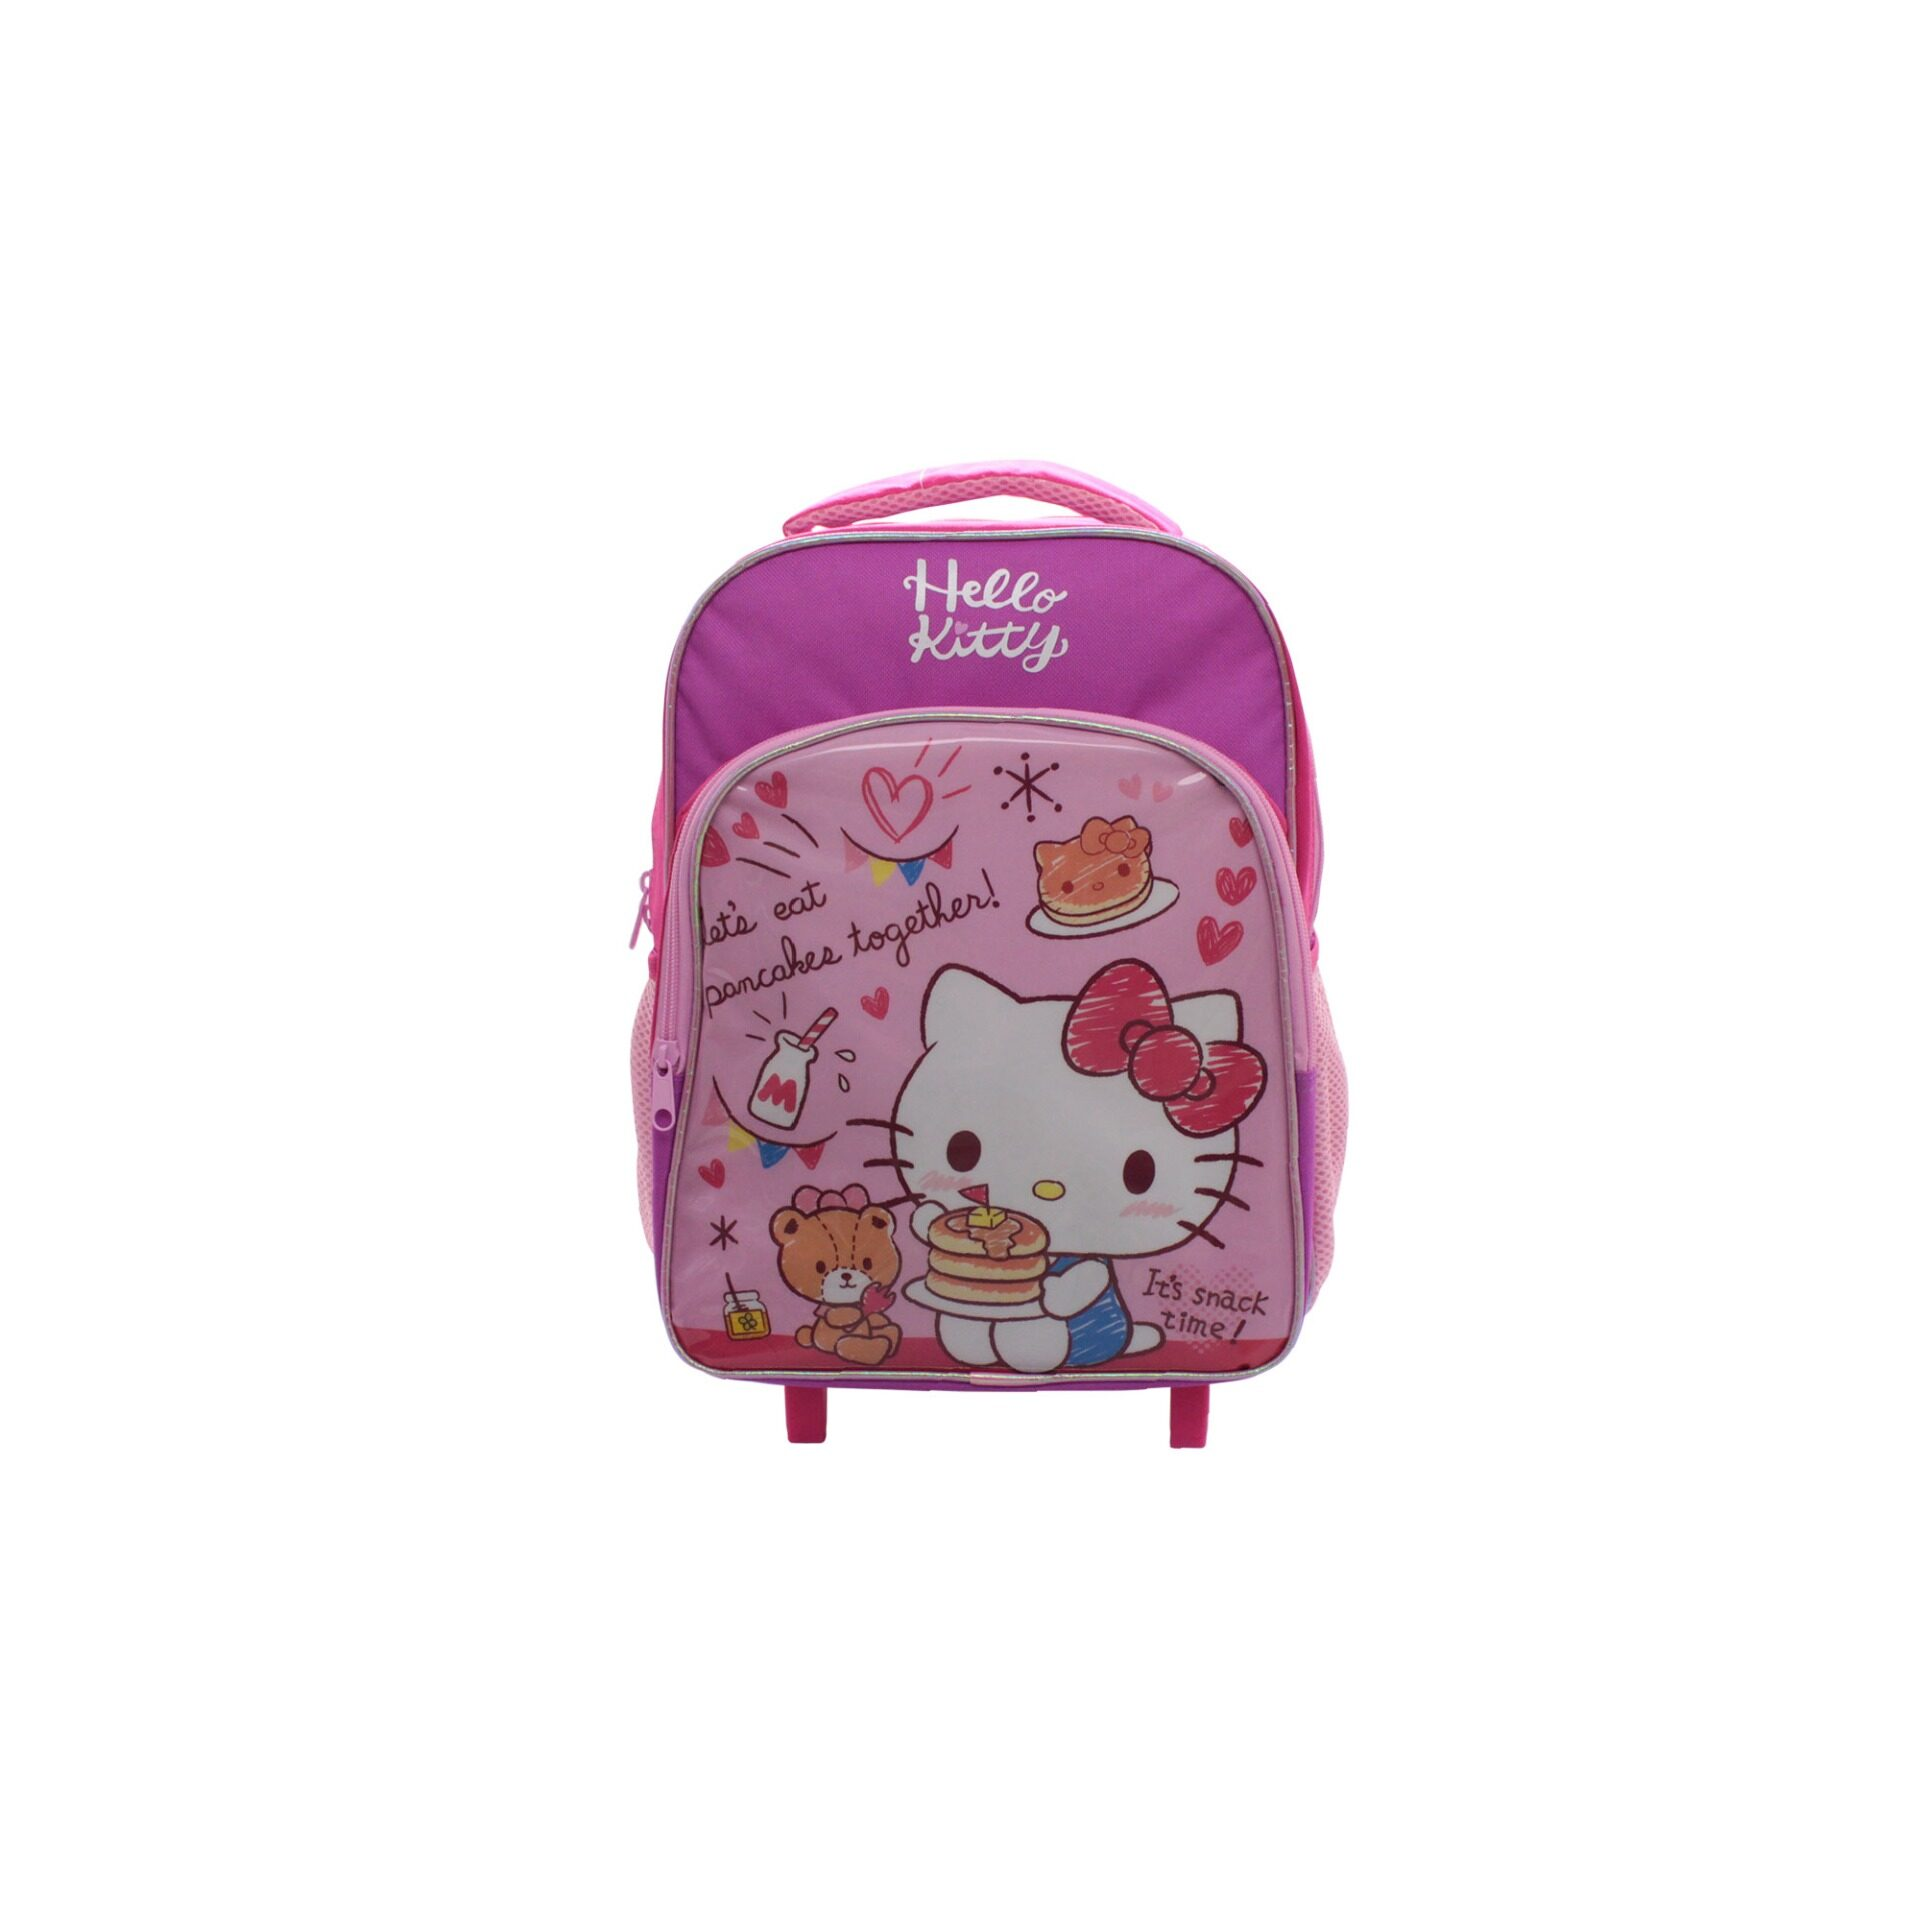 Sanrio Hello Kitty Its Snack Time Kids Girls Pre School Trolley Bag With 2 Wheels & Handle (Pink)